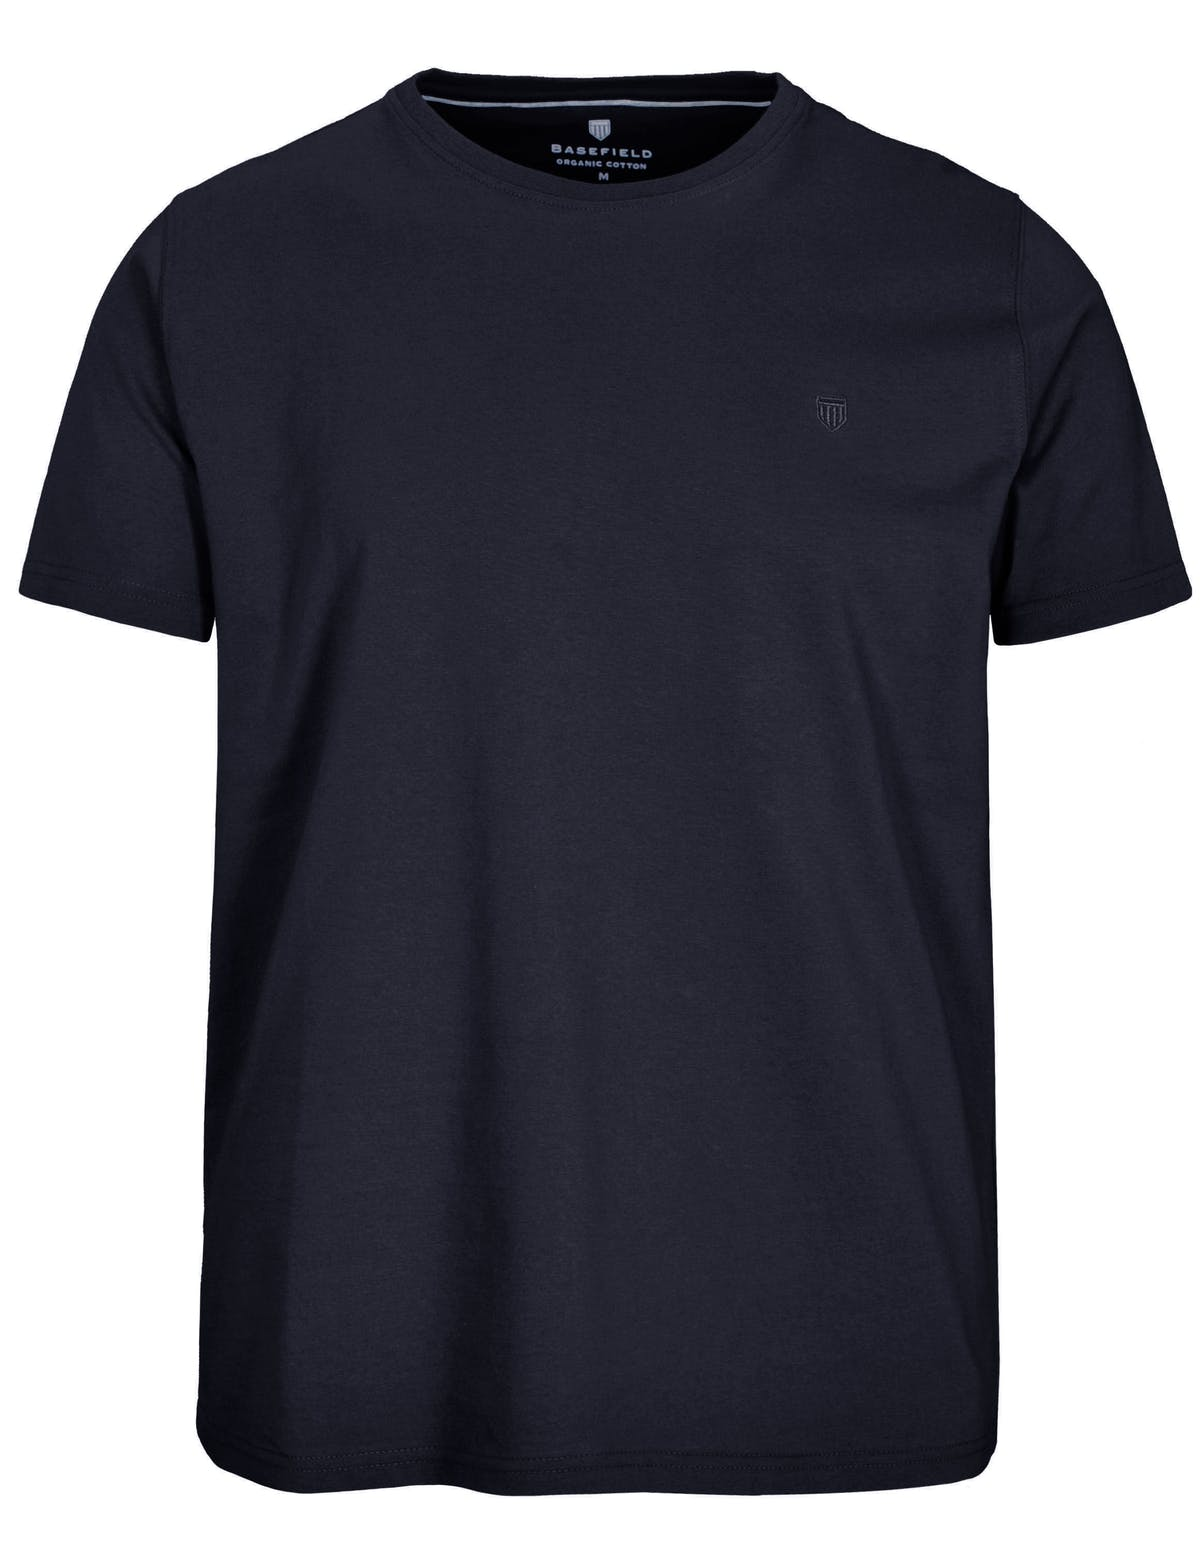 ORGANIC COTTON T-Shirt - Navy